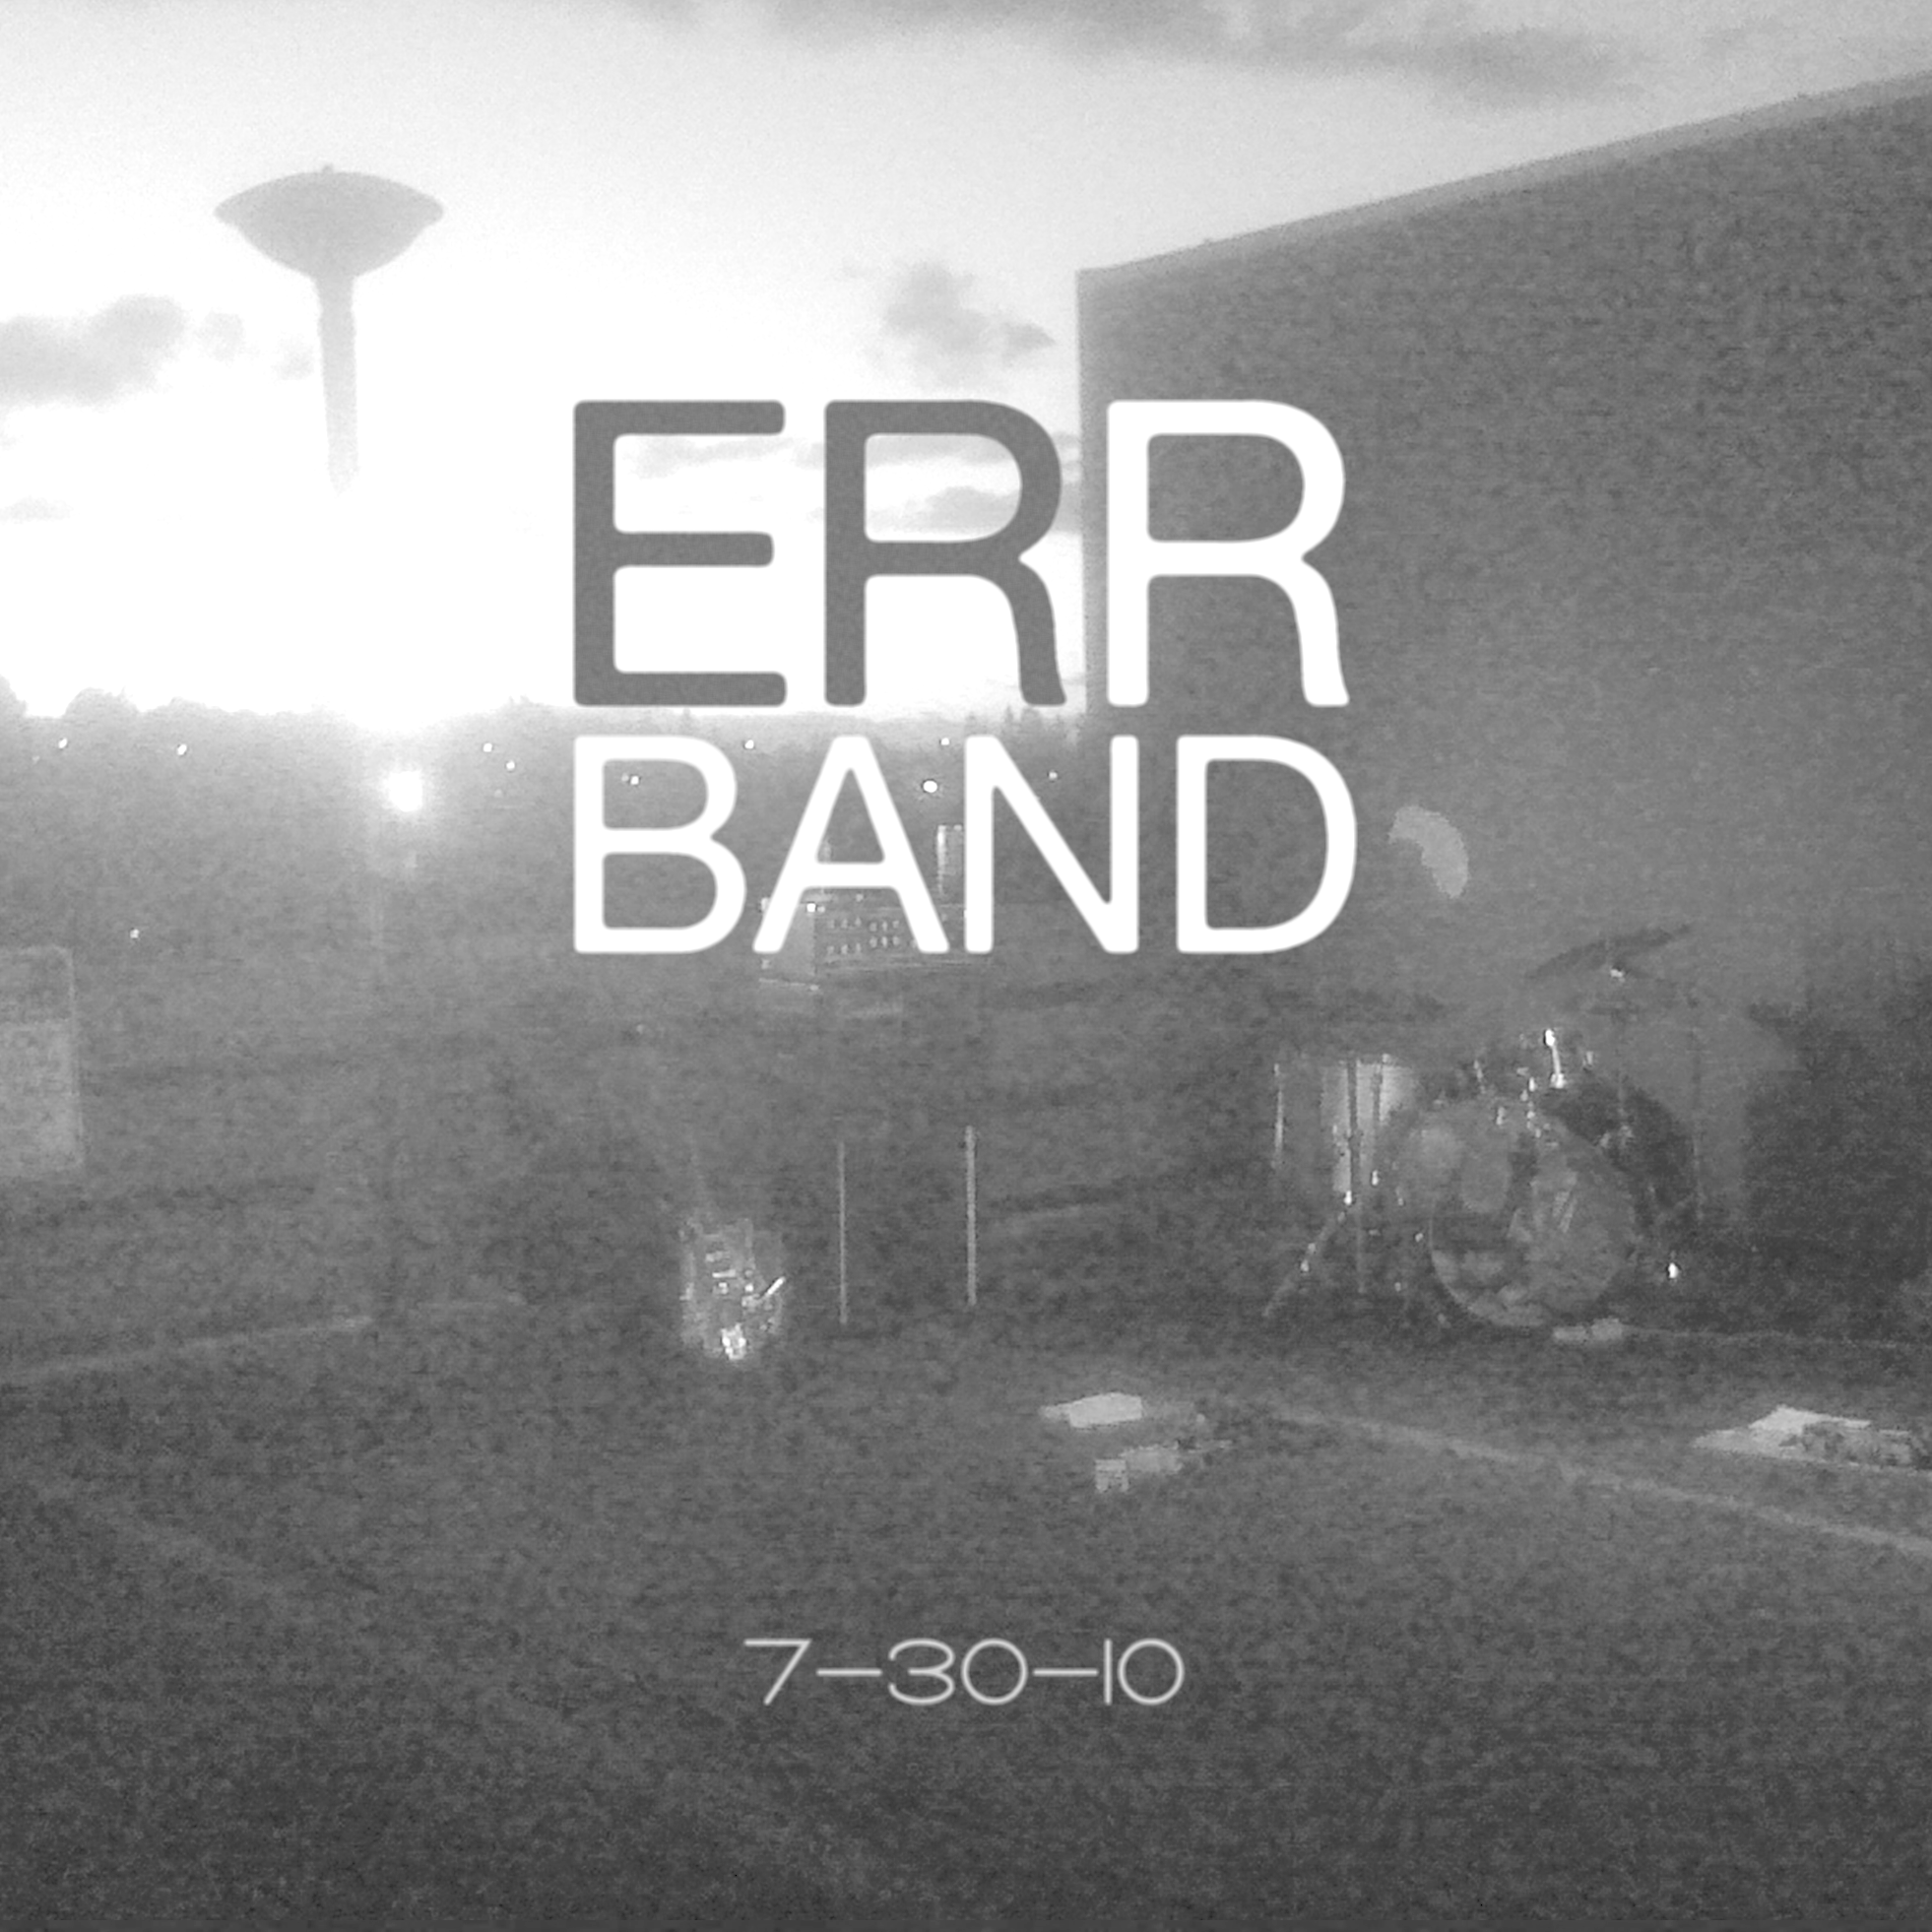 The Err Band - 7-30-10